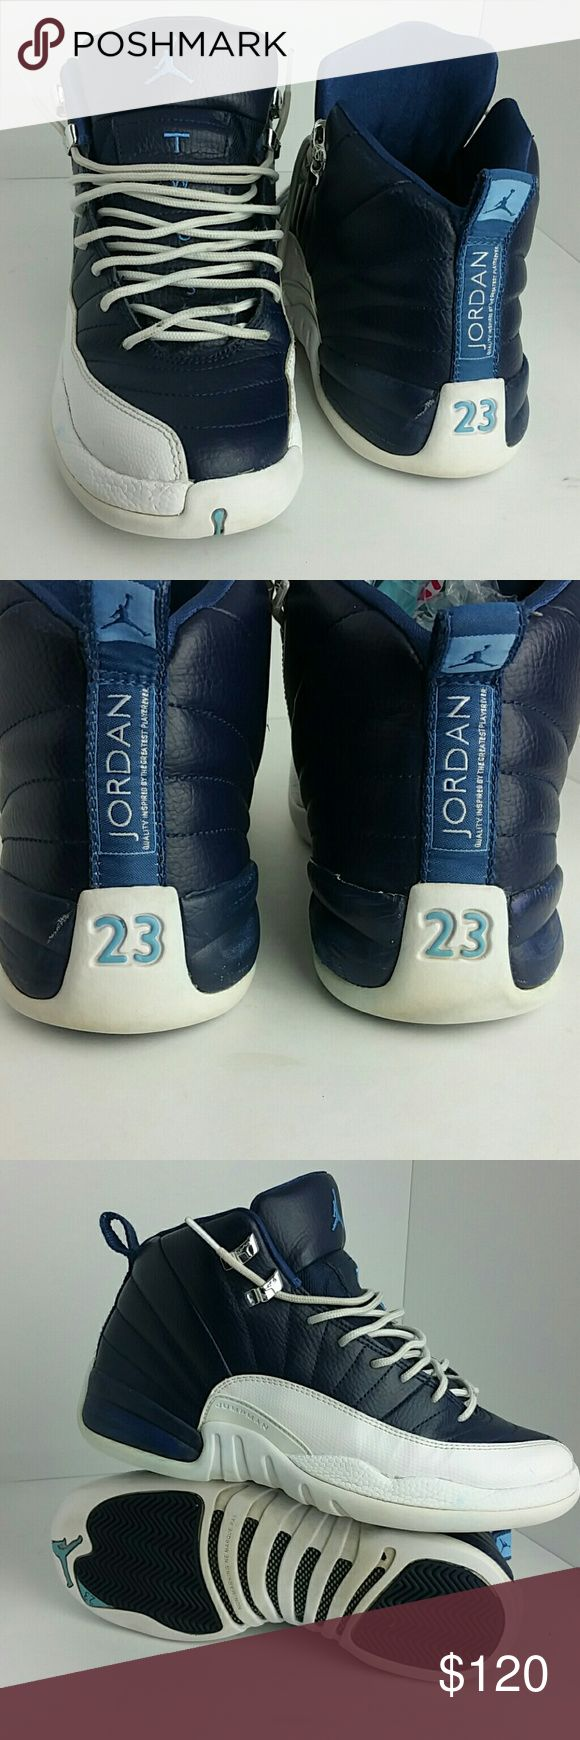 AIR JORDAN 12 RETRO WOMEN/YOUTH SHOES VERY CLEAN INSIDE-OUT   THIS IS A YOUTH SIZE 7Y WHICH IS WOMEN SIZE 8.5  SKE # BK Air Jordan Shoes Athletic Shoes